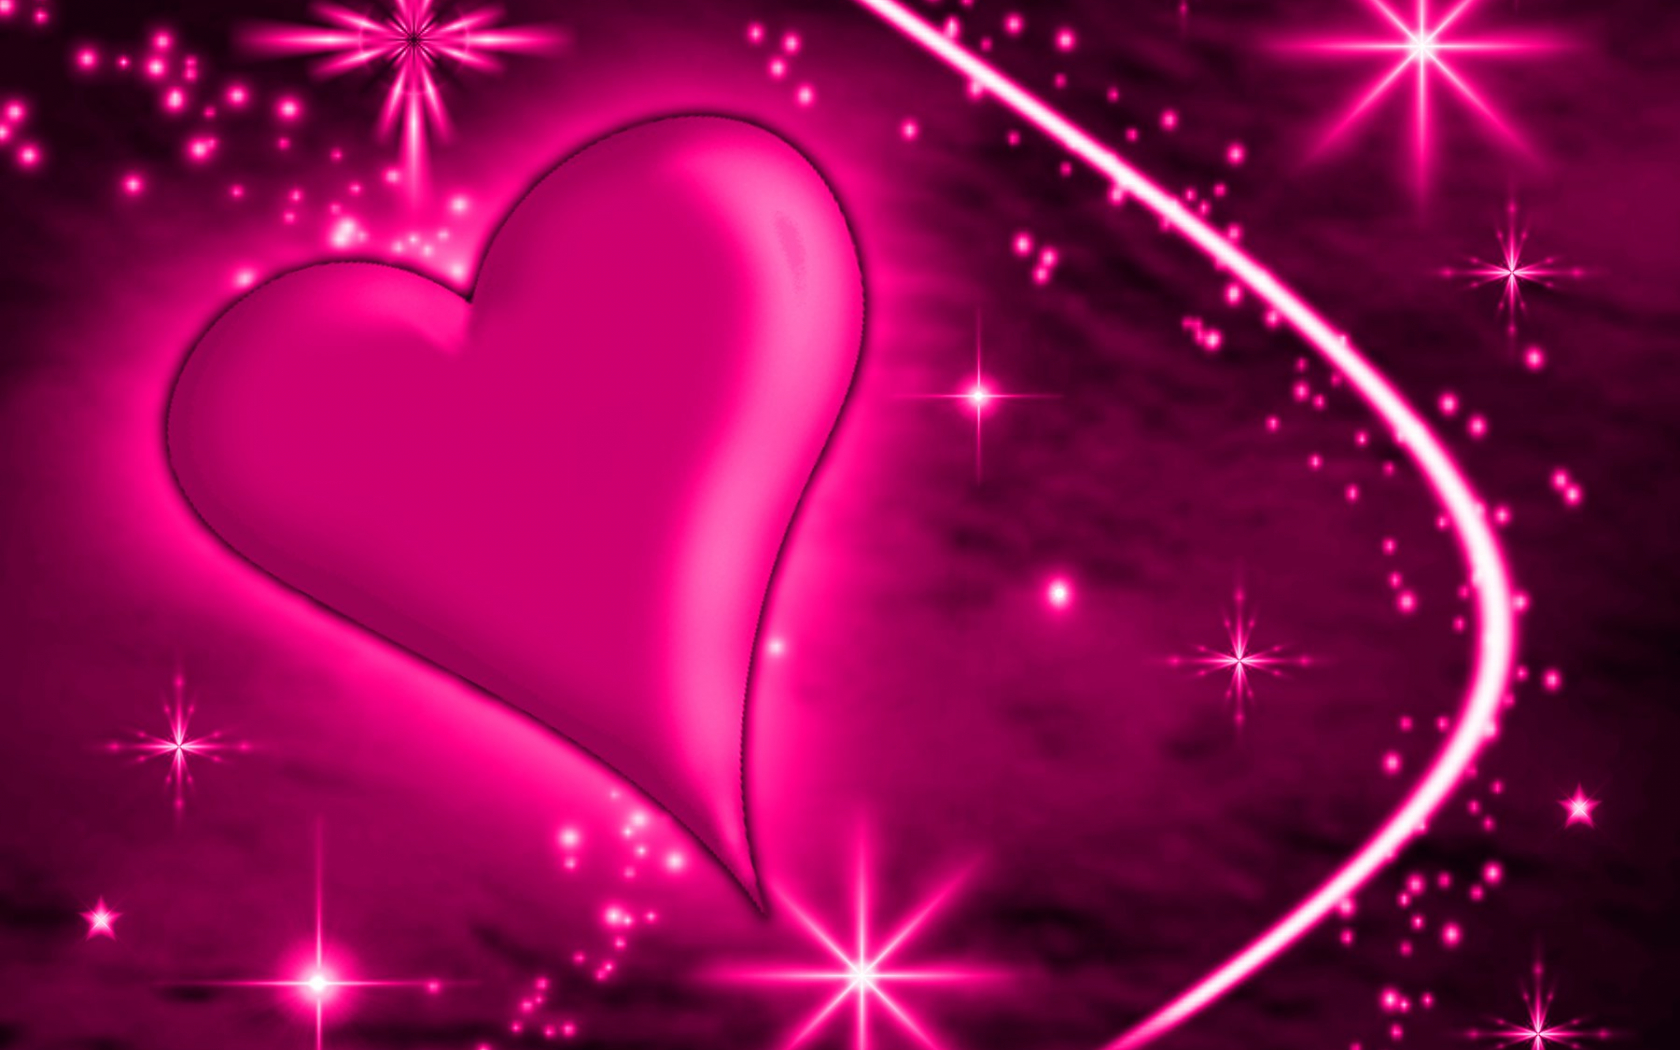 Free Download Pink Heart With Plasma 1800x1600 For Your Desktop